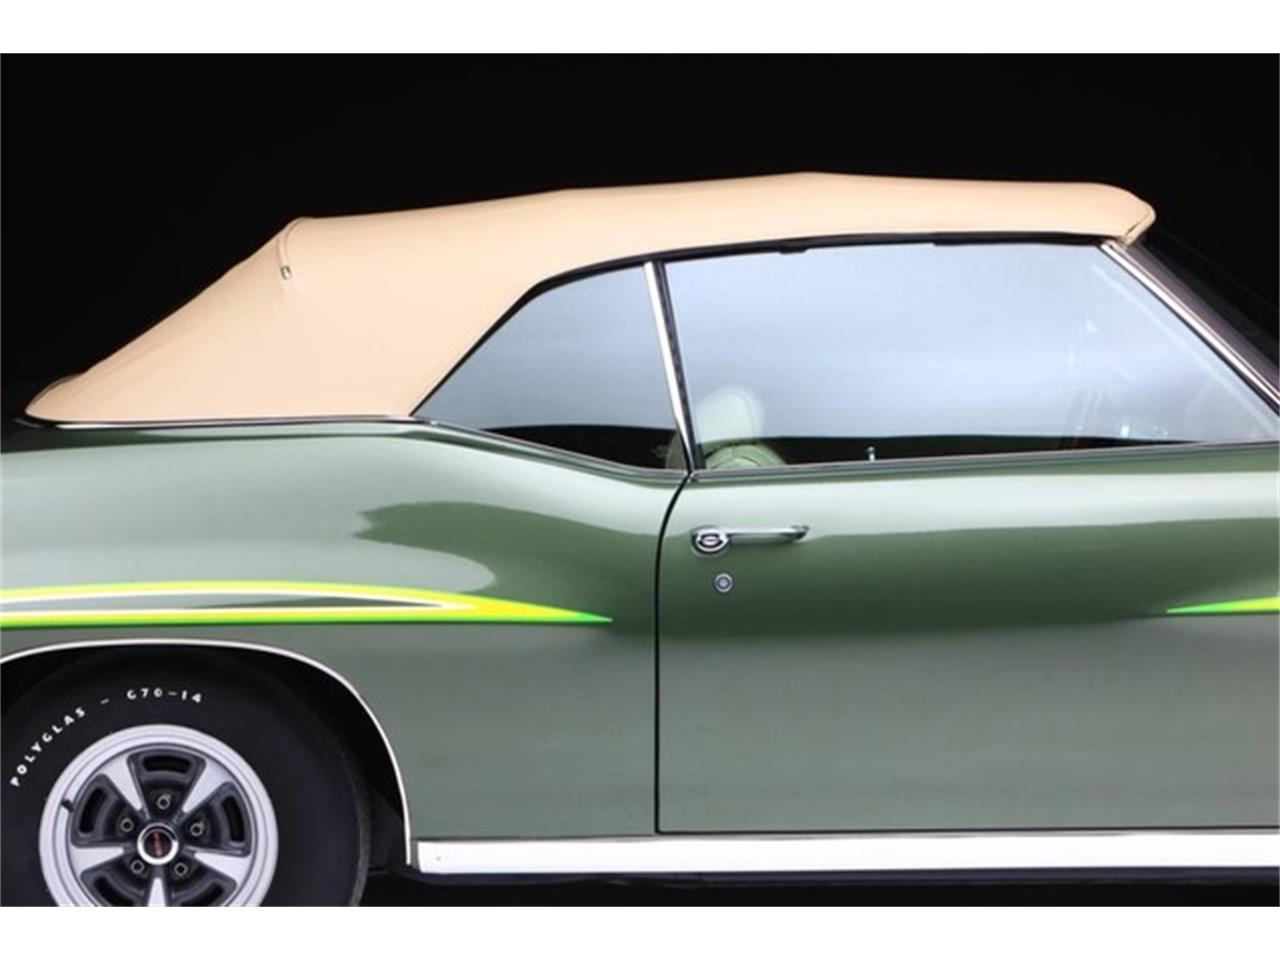 Large Picture of Classic '70 Pontiac GTO (The Judge) located in Clifton Park New York - $219,000.00 - PU25